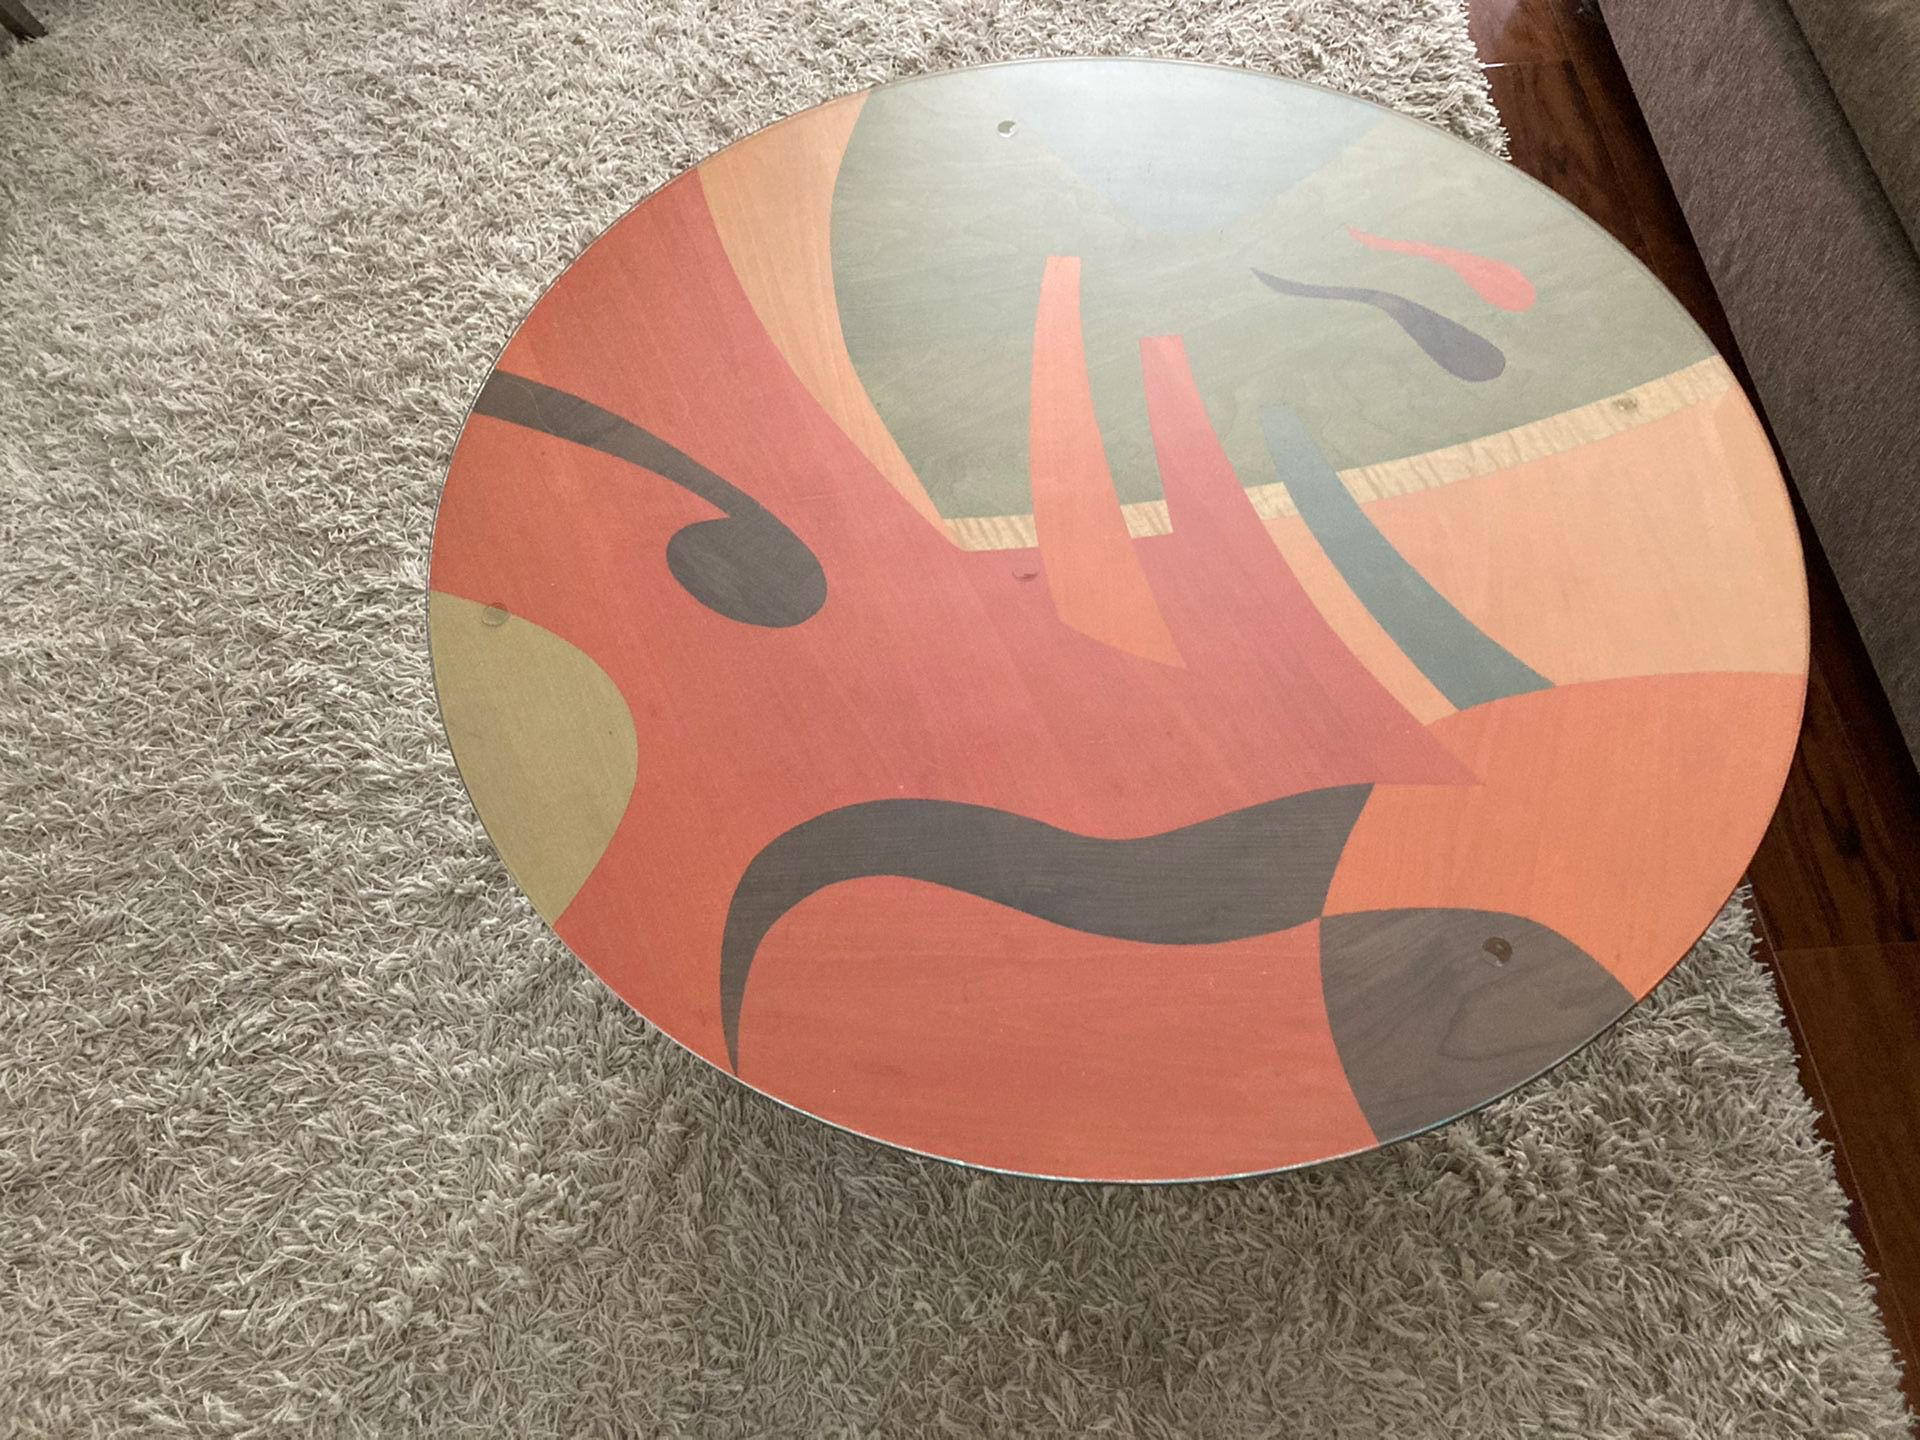 Benjamin Le AXI Furniture Inlaid/dyed Mid-Century Modern Art Coffee Table 42''